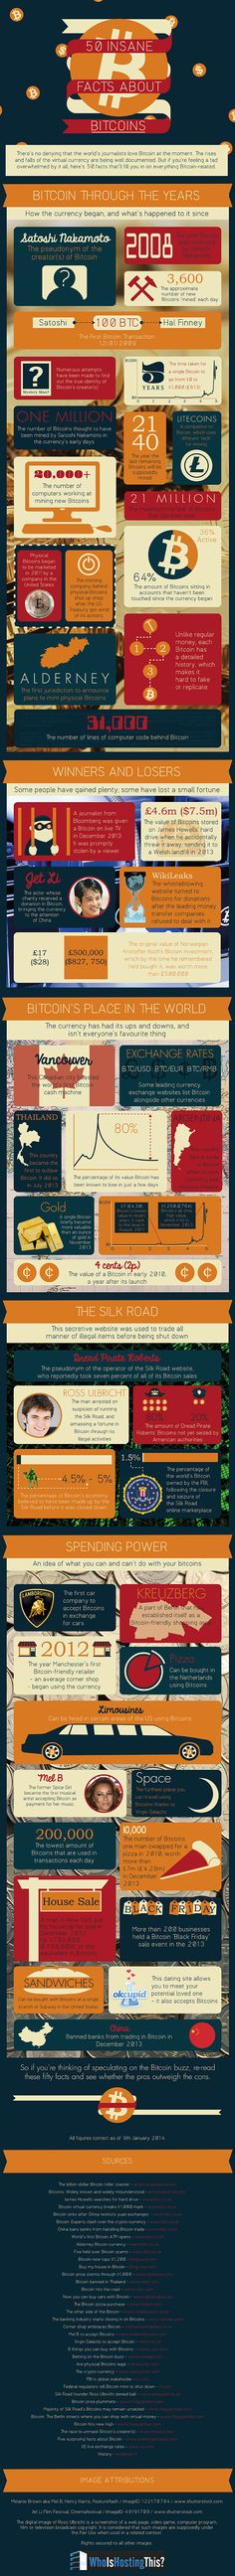 Infographic: 50 Insane Facts About Bitcoin, Bitcoin, all about bitcoin, bitcoin currency,